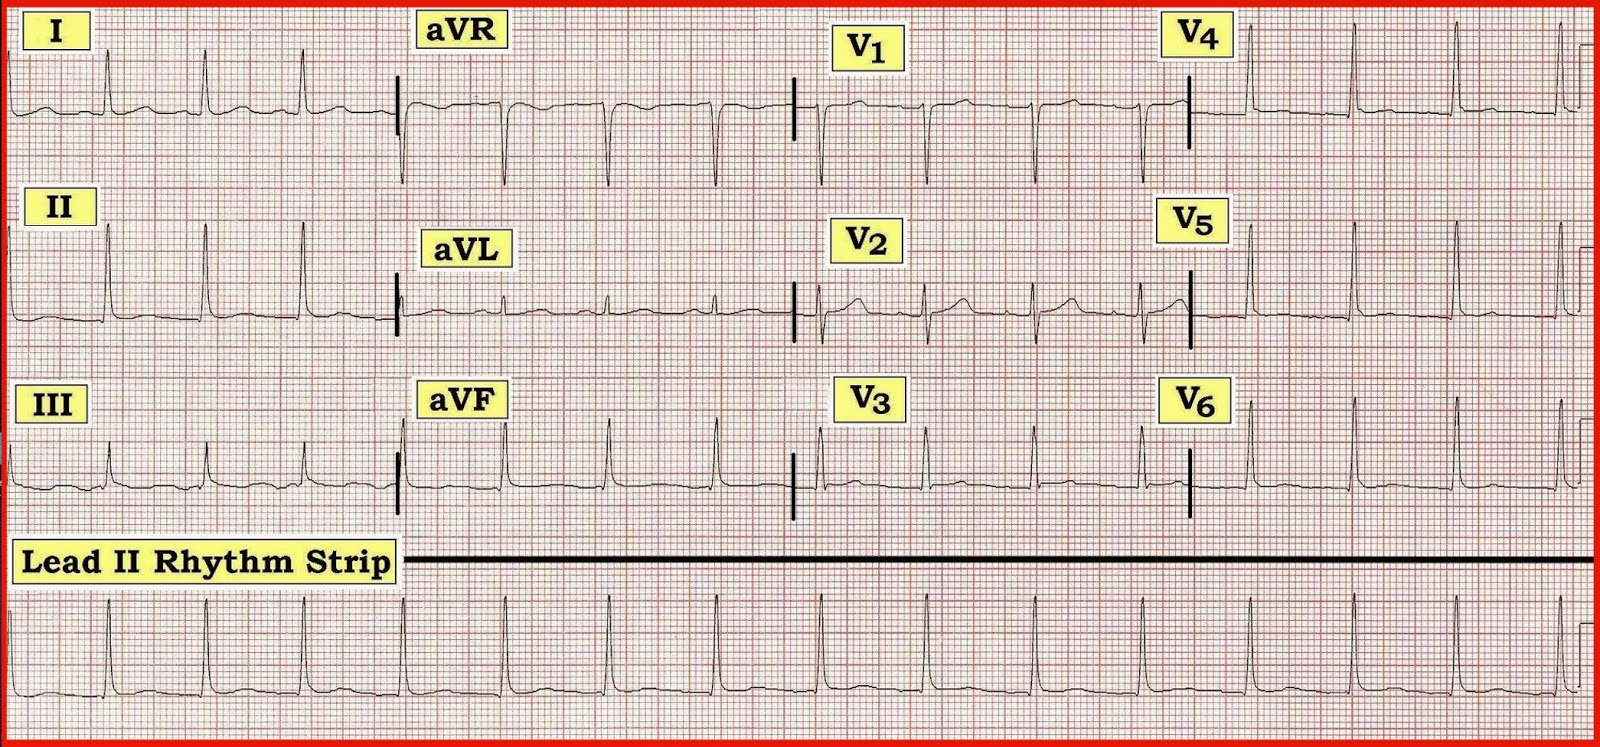 Figure 1 12 Lead ECG And II Rhythm Strip Obtained From A 43 Year Old Man With Influenza Like Illness Atypical Chest Pain